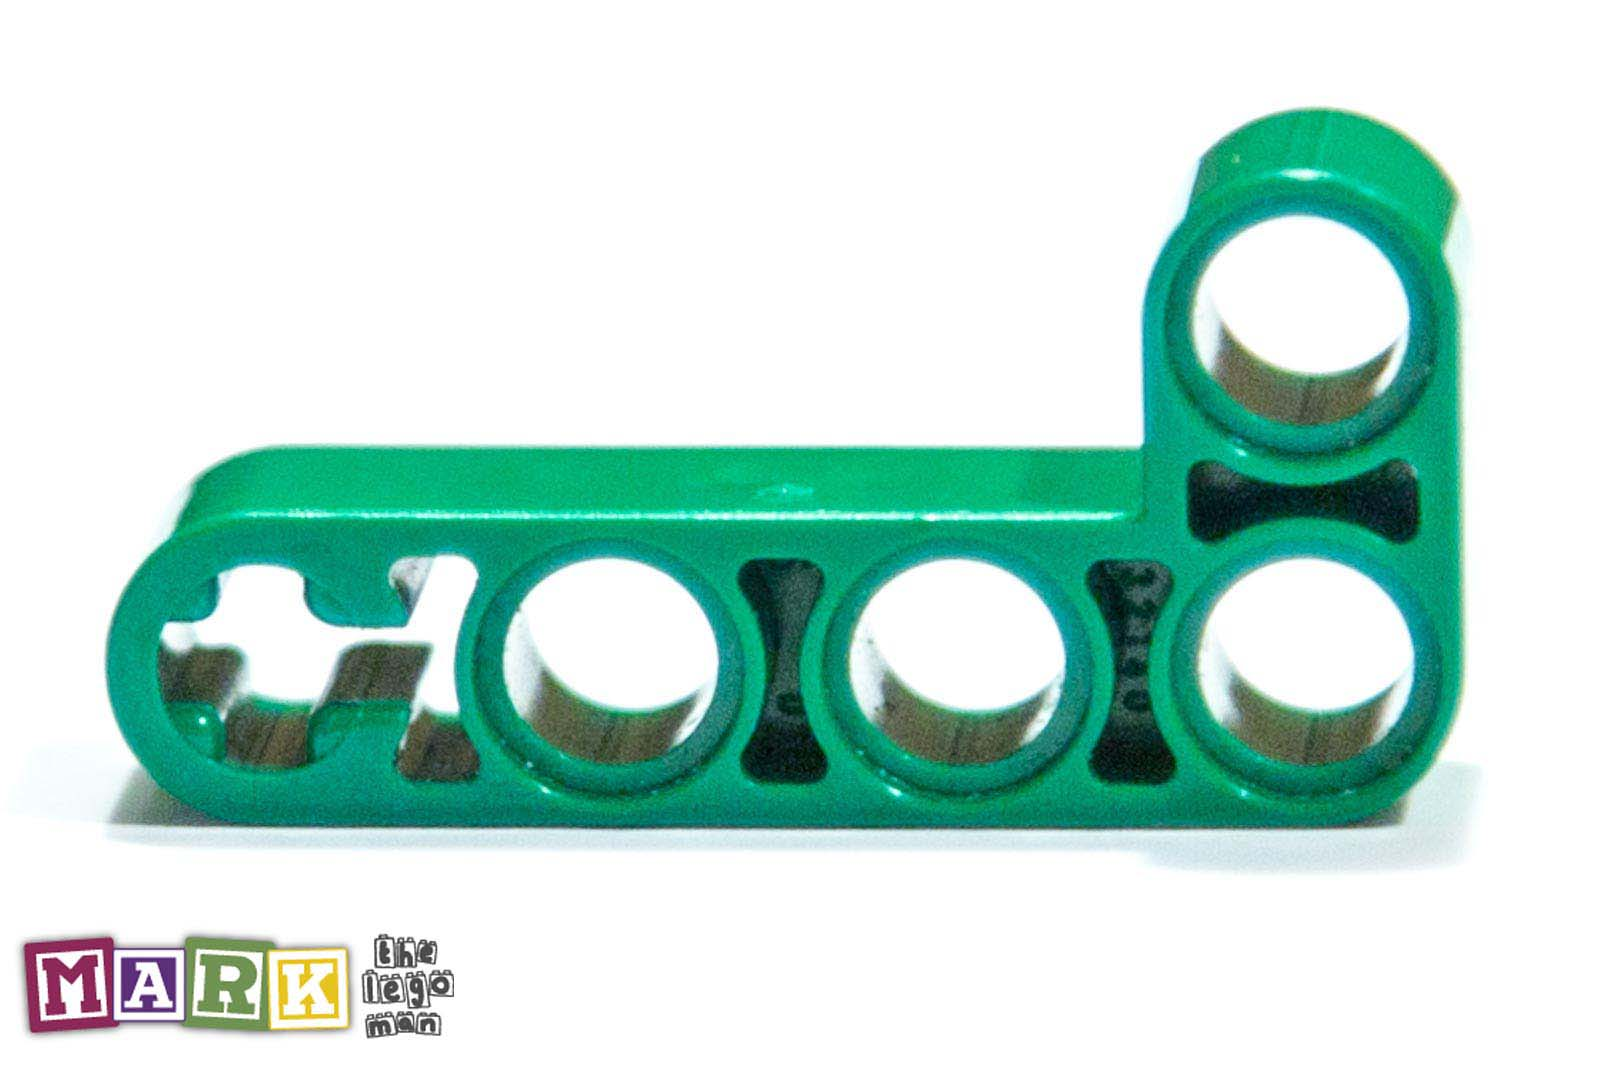 Lego 4124031 32140 1x Green 4x2 90 Degree Technic Angled Beam